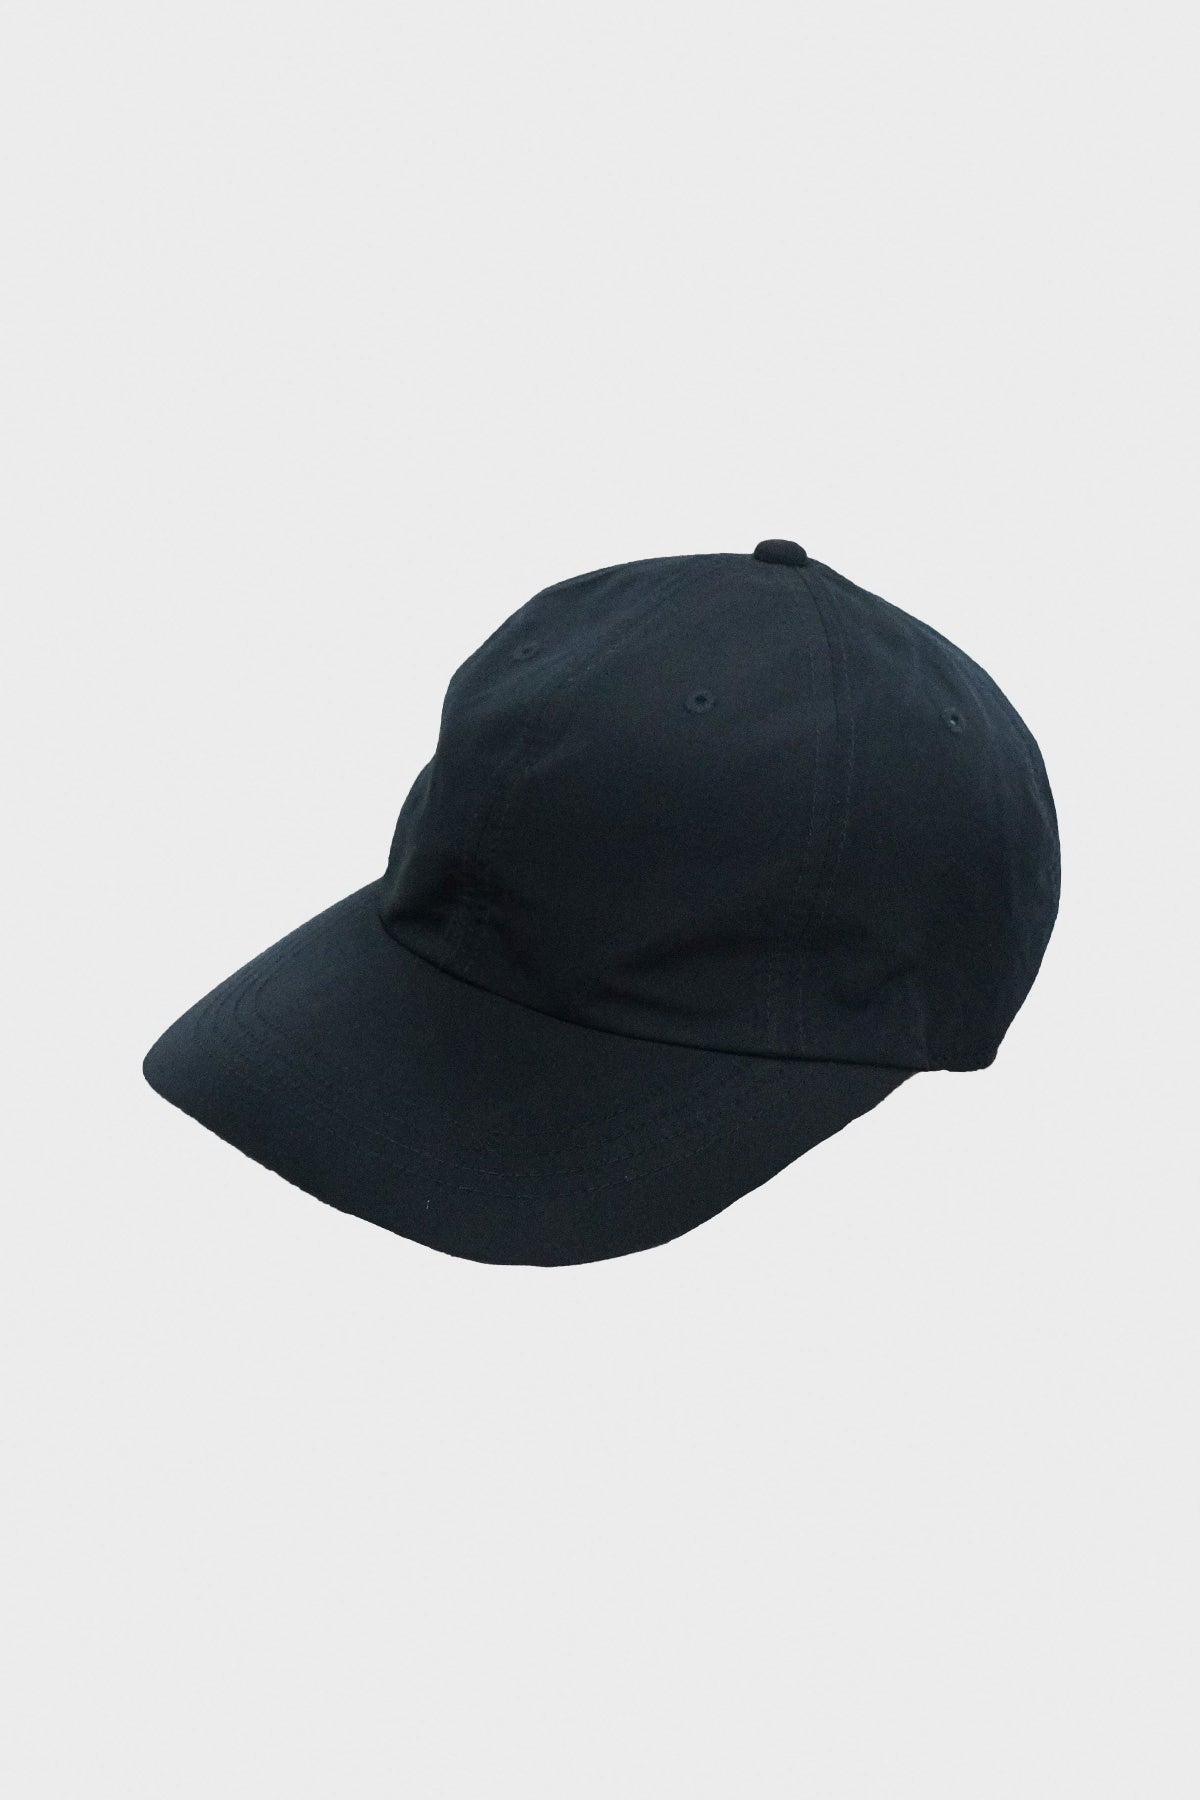 Lady White Co. - Summer Cap - Navy - Canoe Club